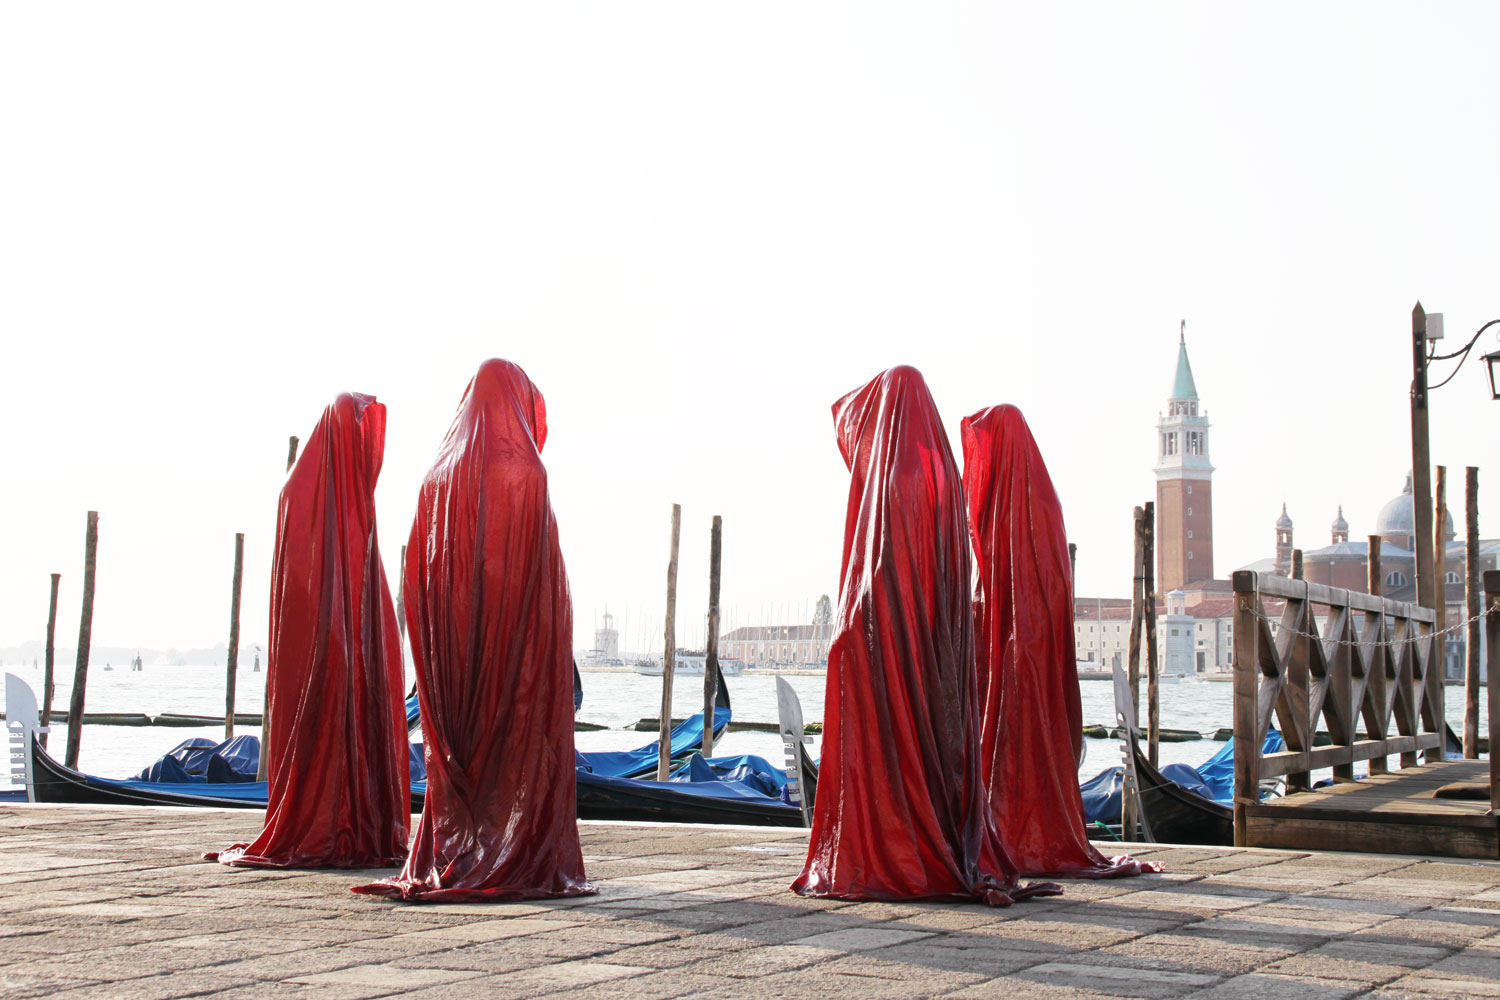 public art biennial festival show exhibition in Venice by Manfred Kielnhofer contemporary art design architecture sculpture theatre 4273